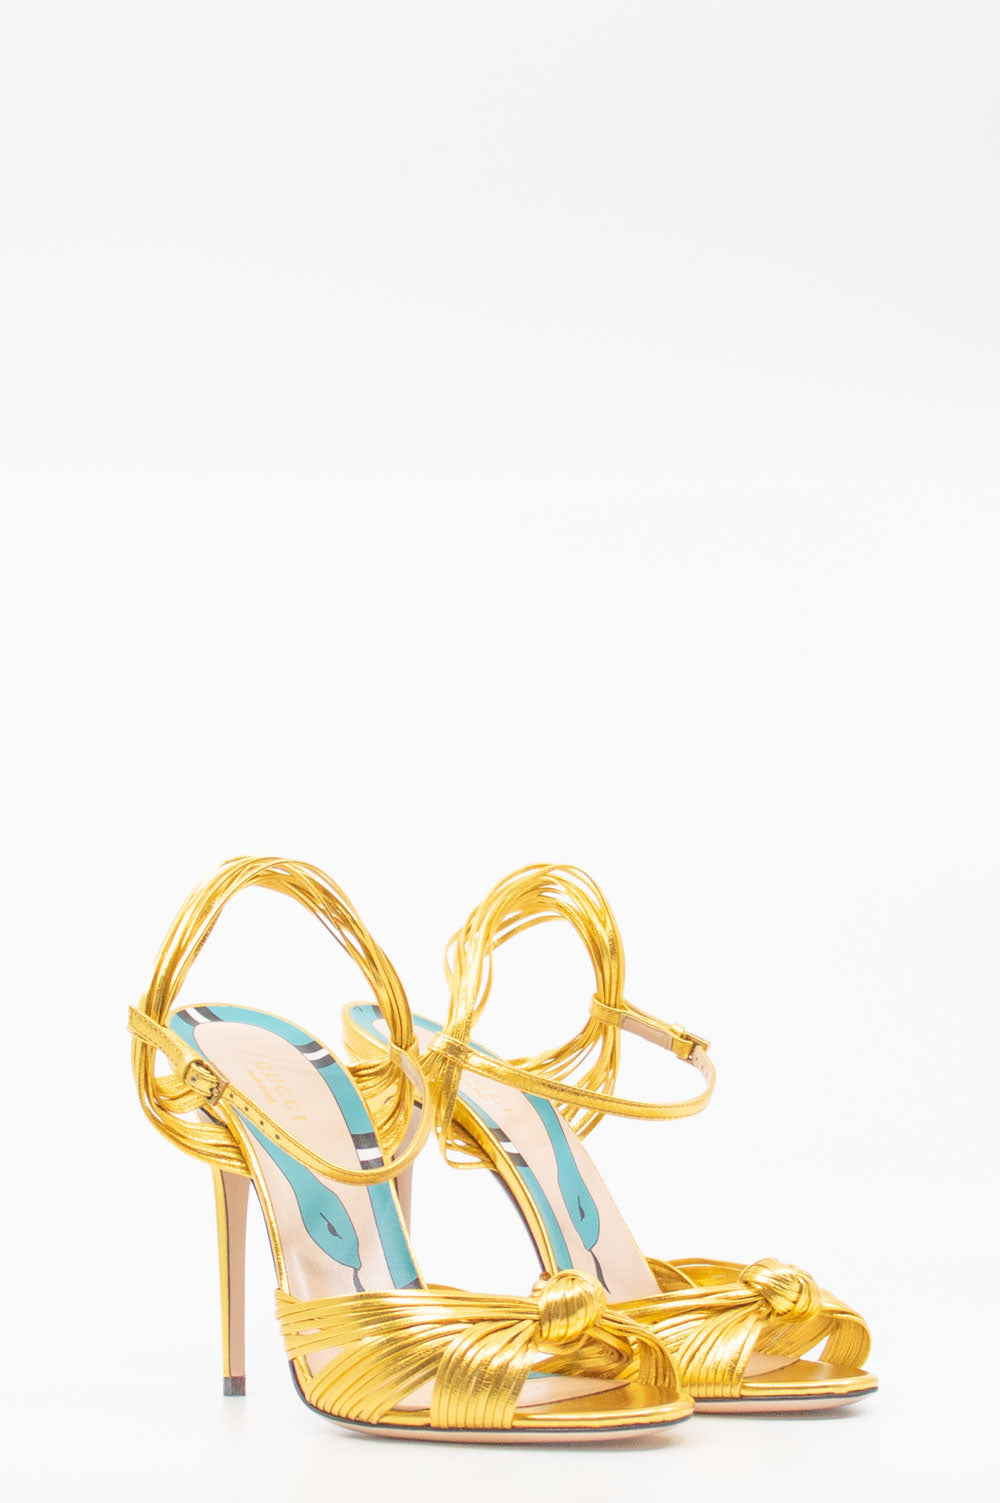 GUCCI Crawford Sandals